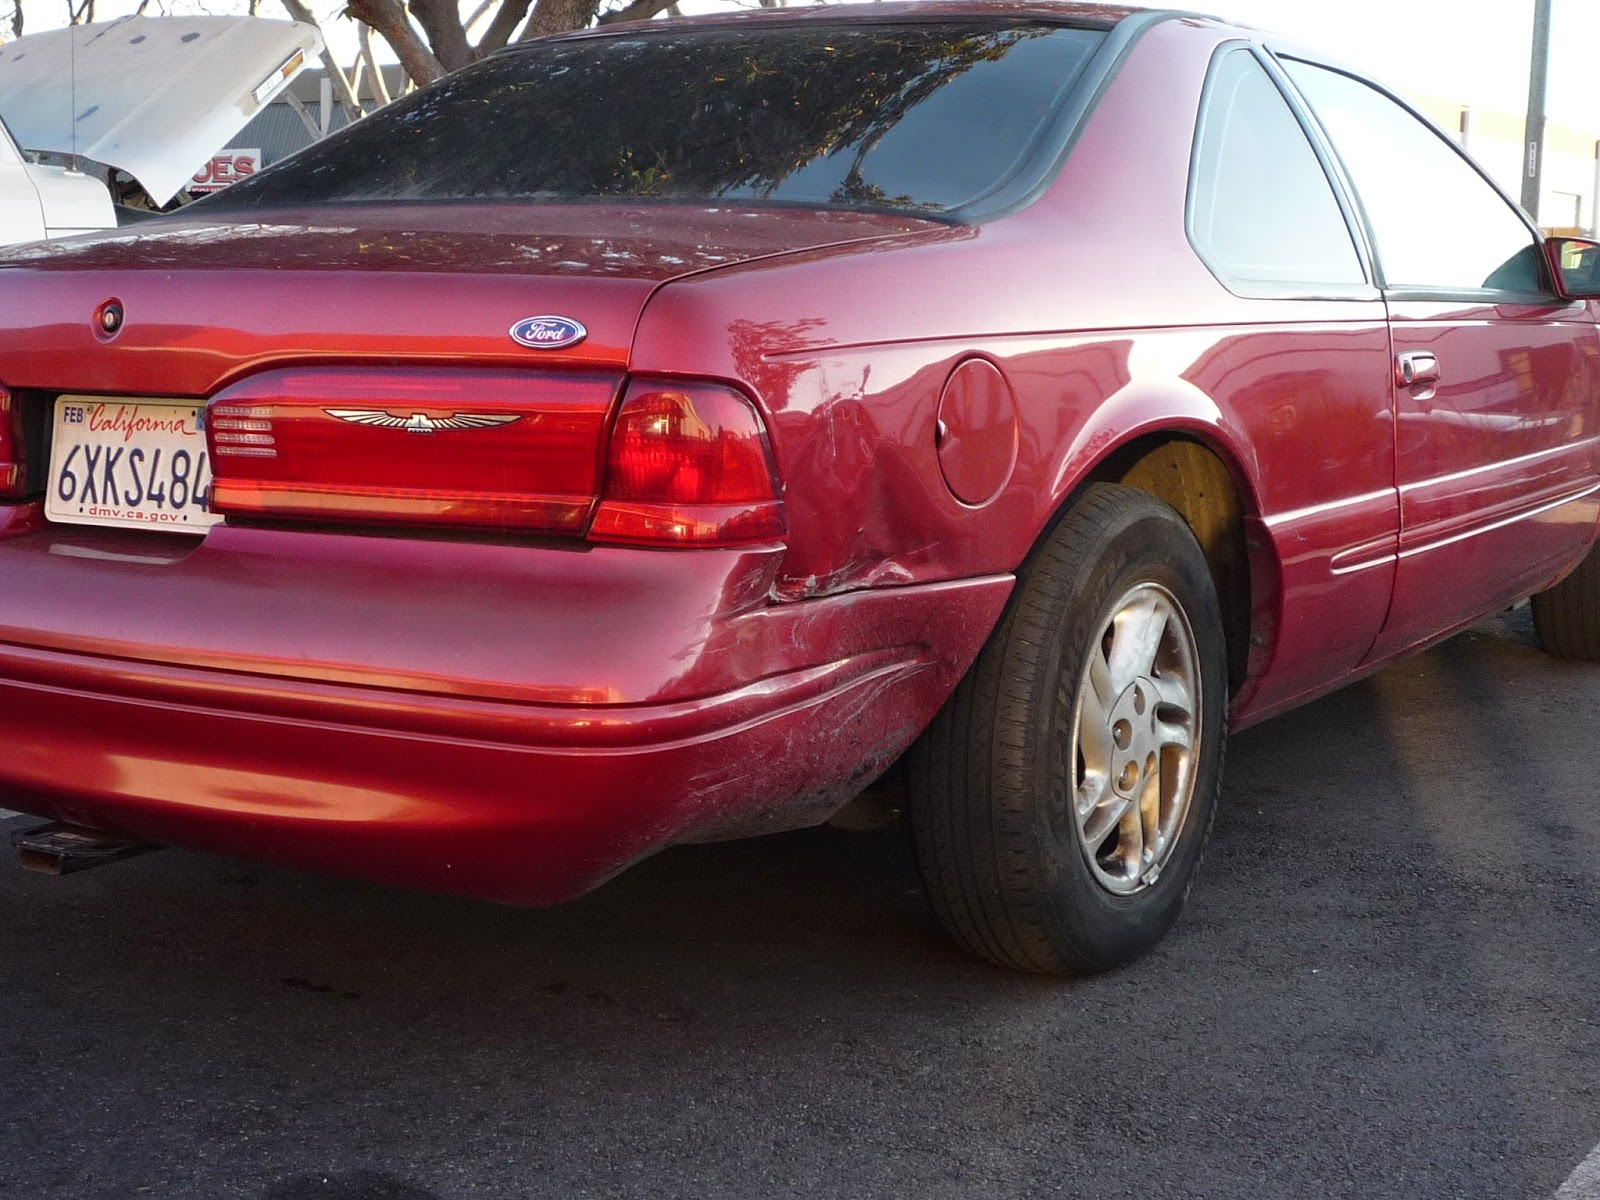 Accident damage on 1996 Ford Thunderbird